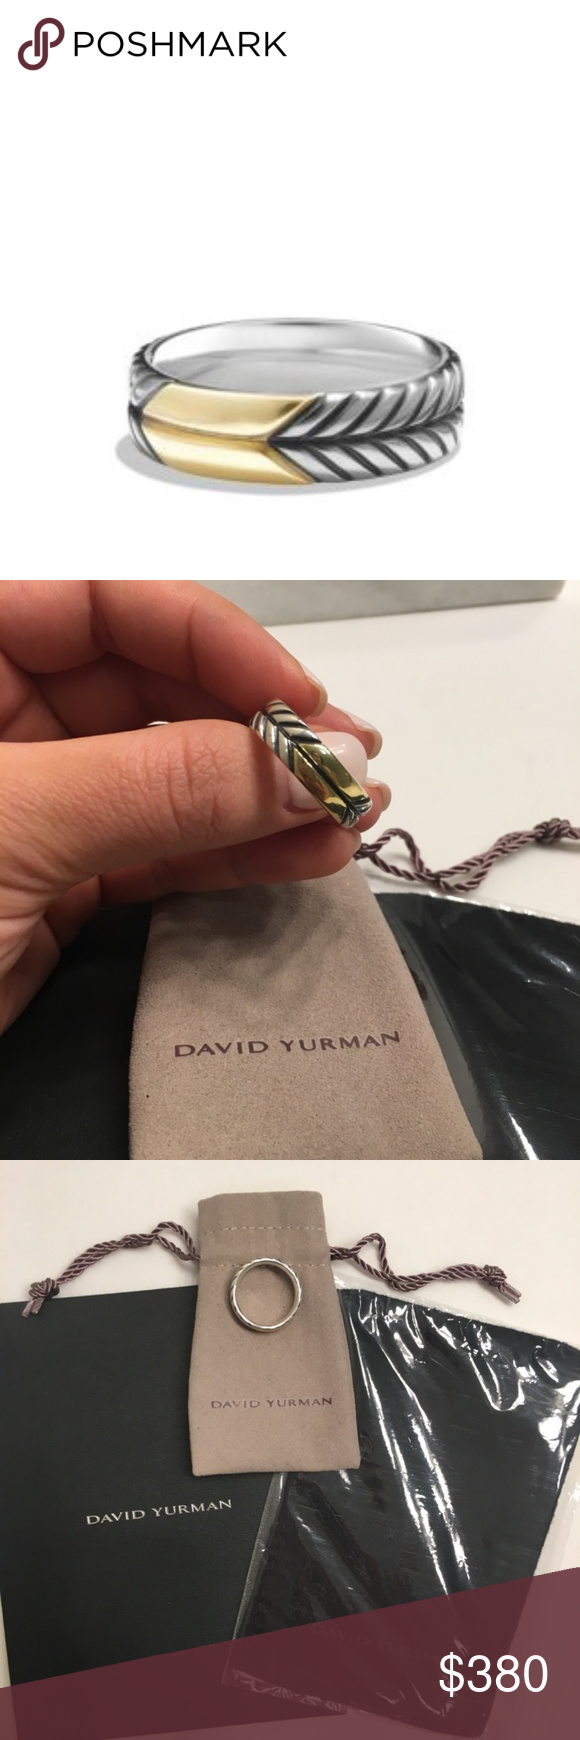 david yurman chevron band ring this never been worn menu0027s sterling silver and 18k gold chevron ring is absolutely gorgeous i purchased this ring a couple